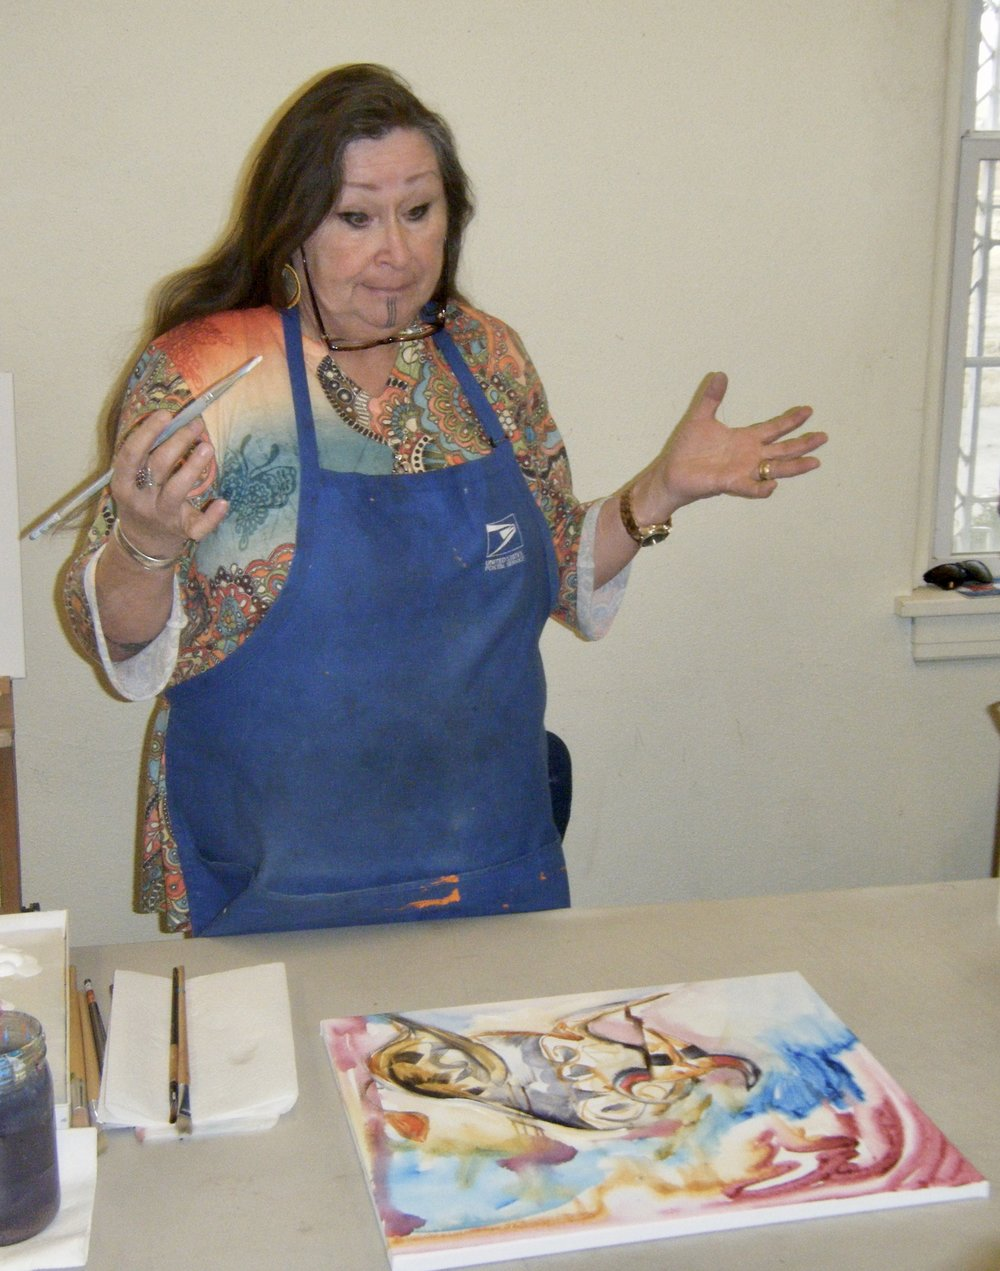 Blackfeet artist, Valentina LaPier teaches techniques and design during the Acrylic Painting Workshop.